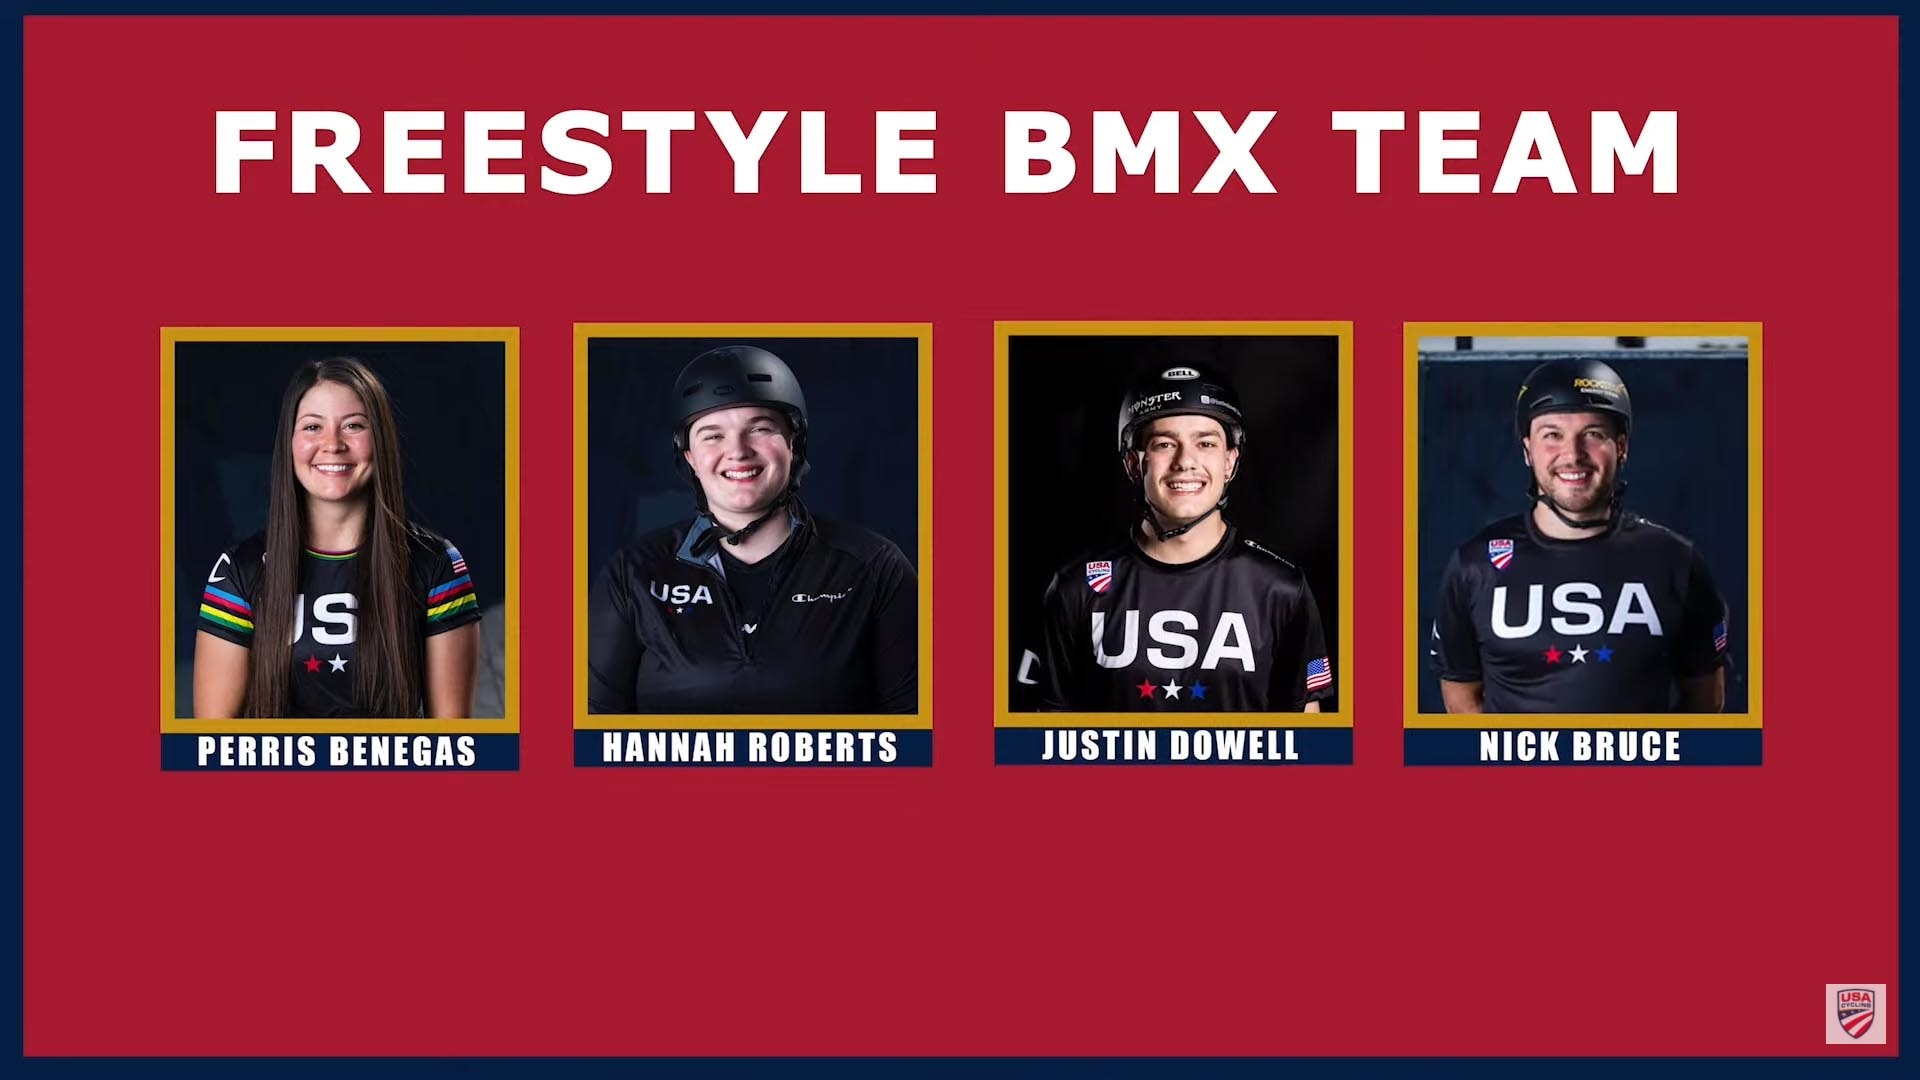 Team USA's BMX freestyle team roster for the Tokyo Olympics